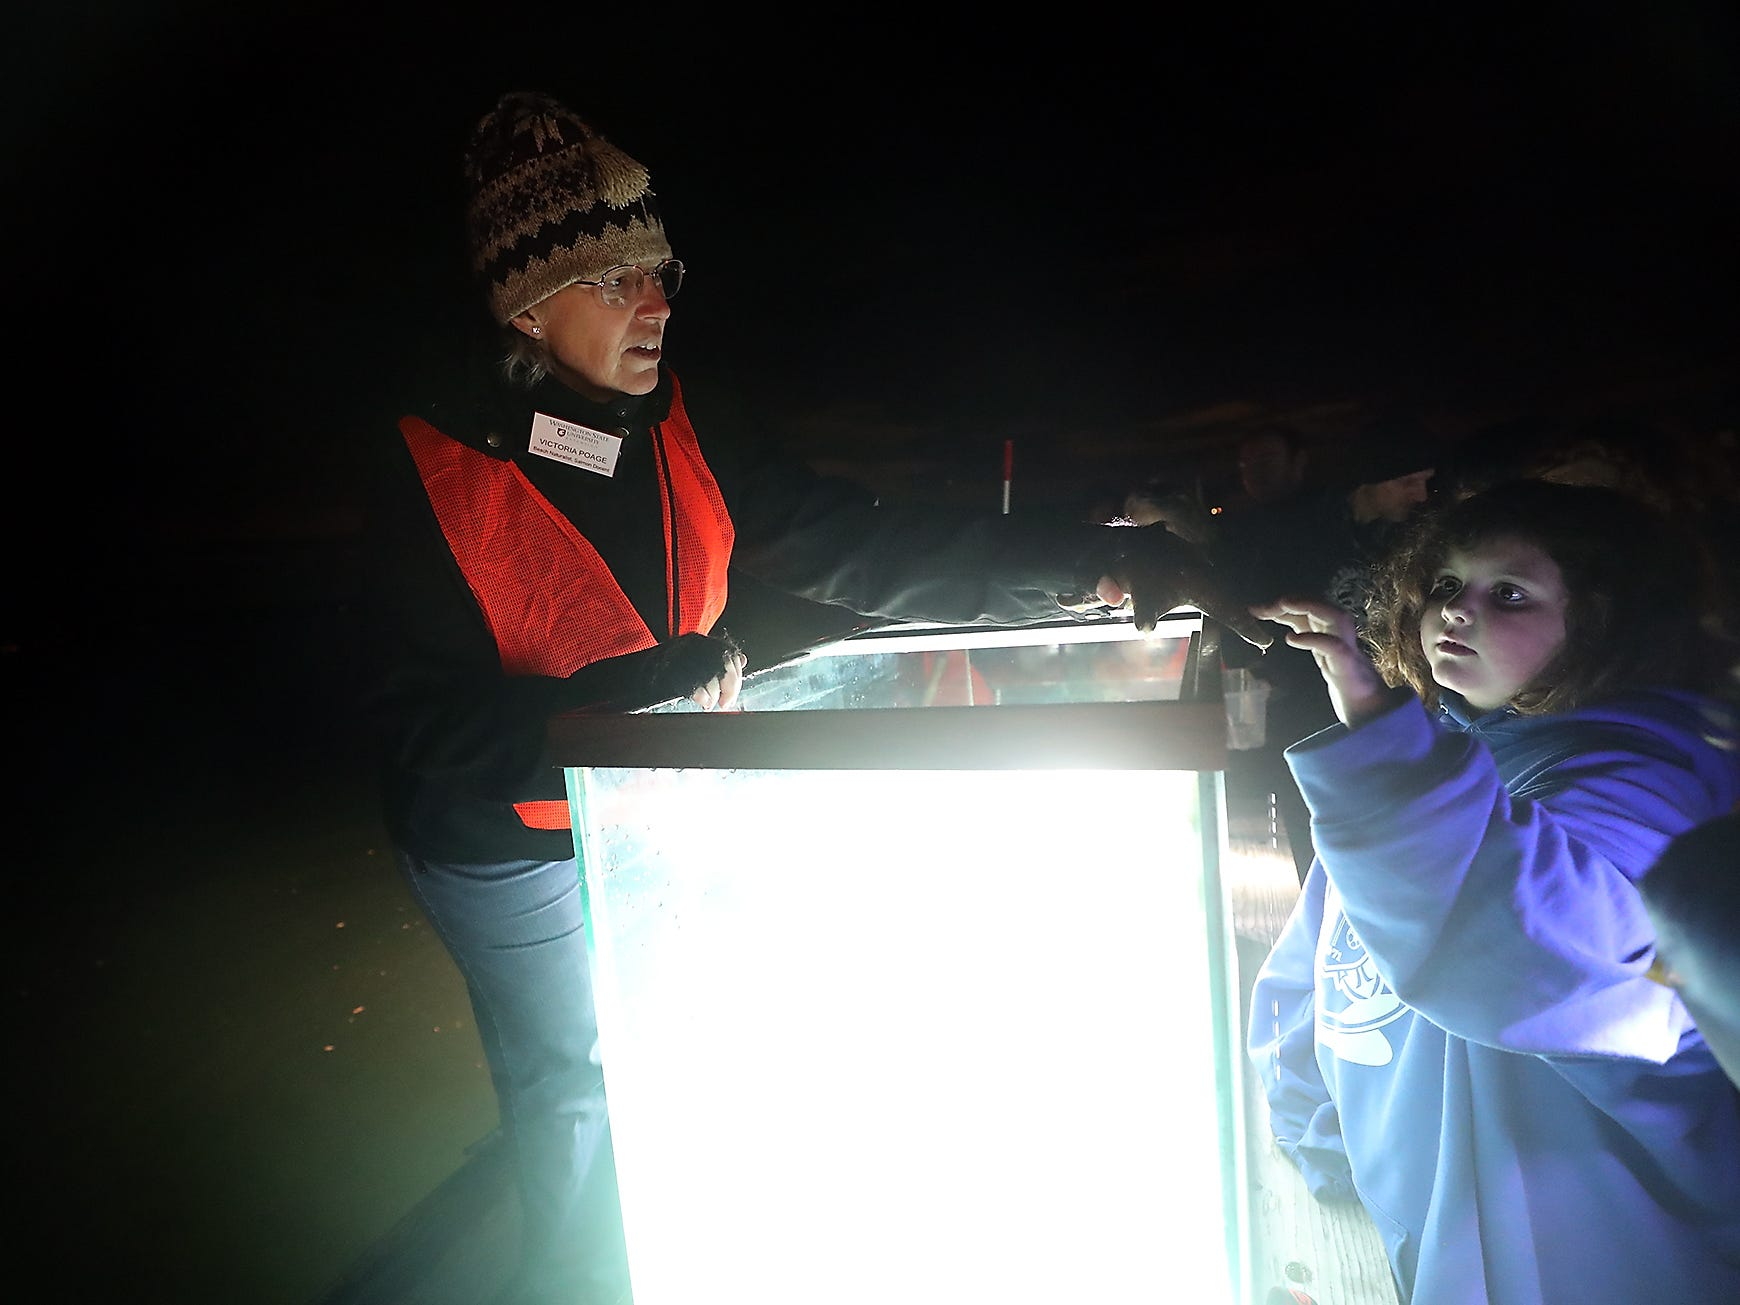 Kitsap Beach Naturalist Victoria Poage lets a couple of youngsters touch a star fish before she puts him in the tank during the Night Time Pier Peer at the Brownsville Marina on Friday, March 1, 2019. Kitsap Beach Naturalists shined their lights on the sea life that flourishes around the pier and shared their knowledge with those taking part in the event.